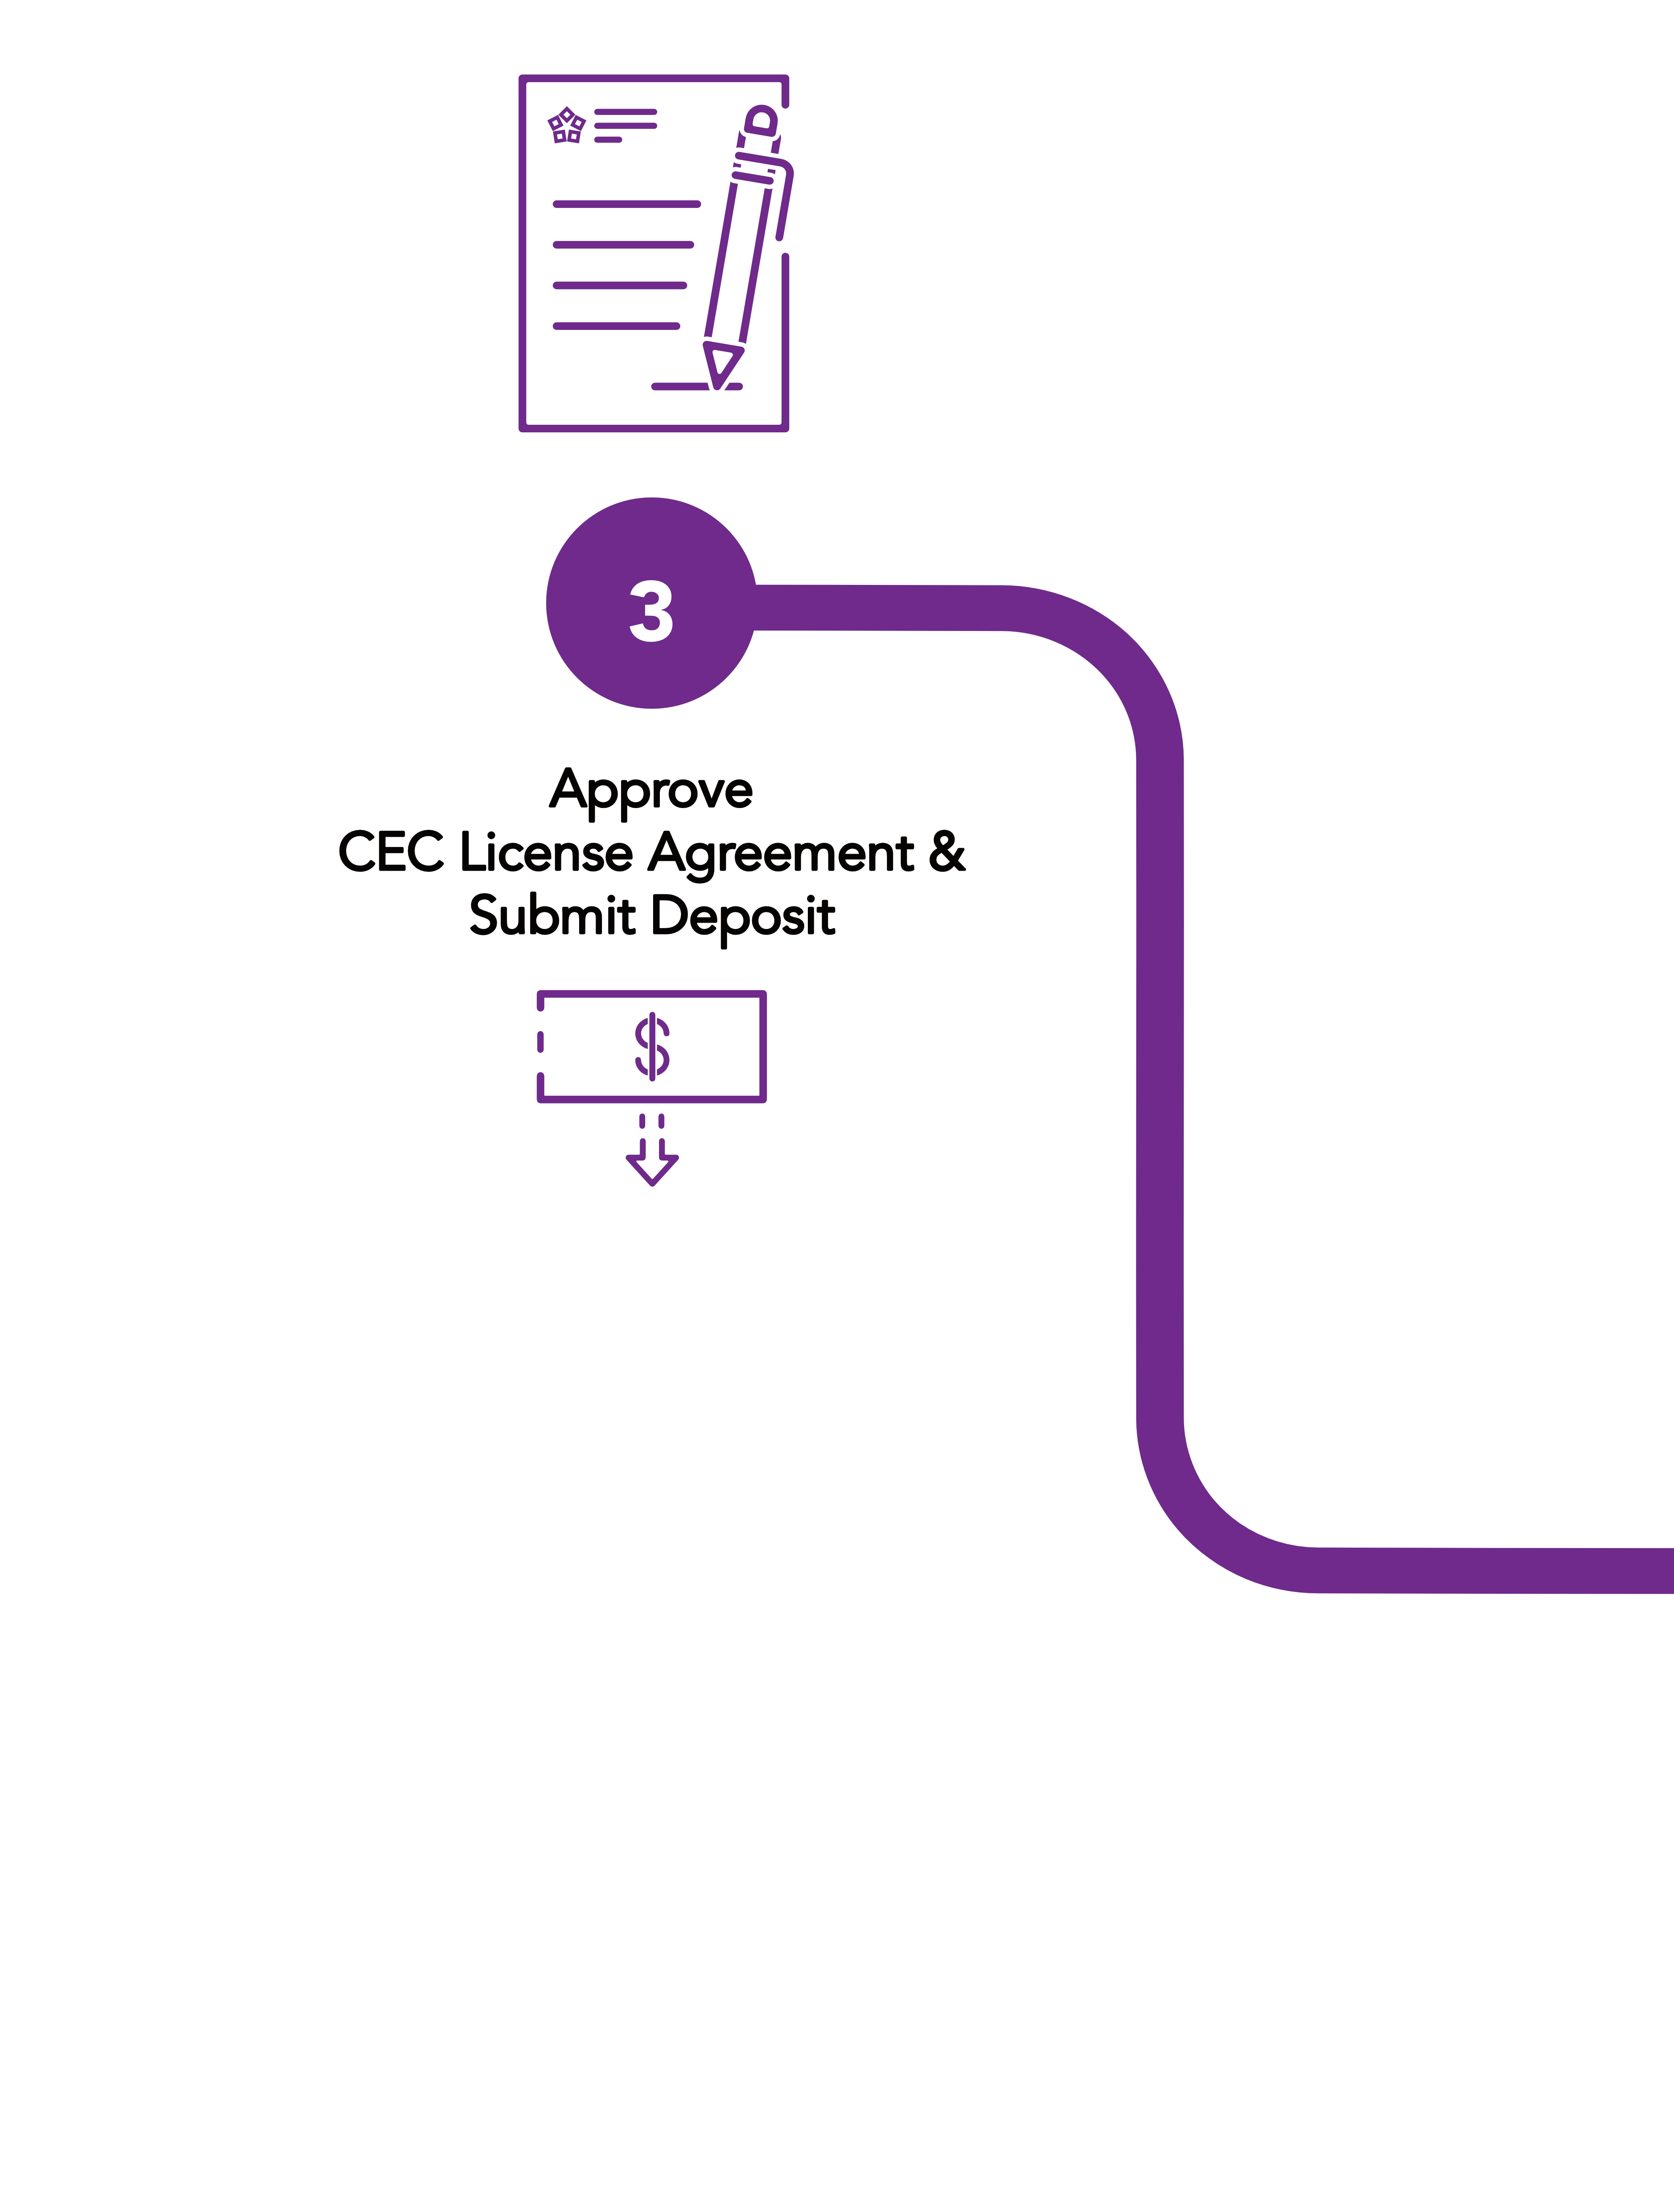 Approve your CEC License Agreement & Submit Deposit